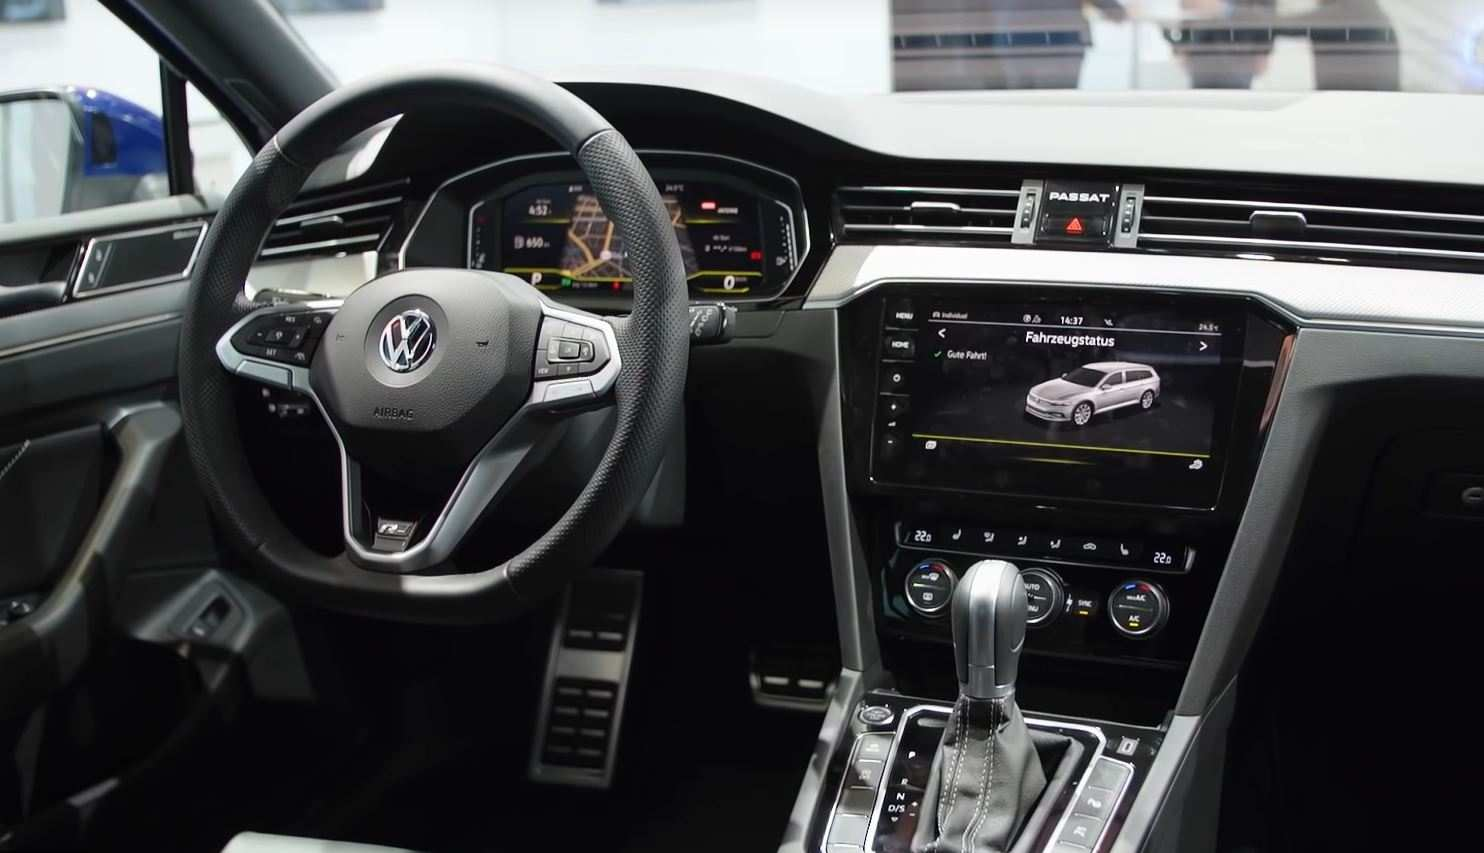 28 New 2020 Volkswagen Passat Interior Images